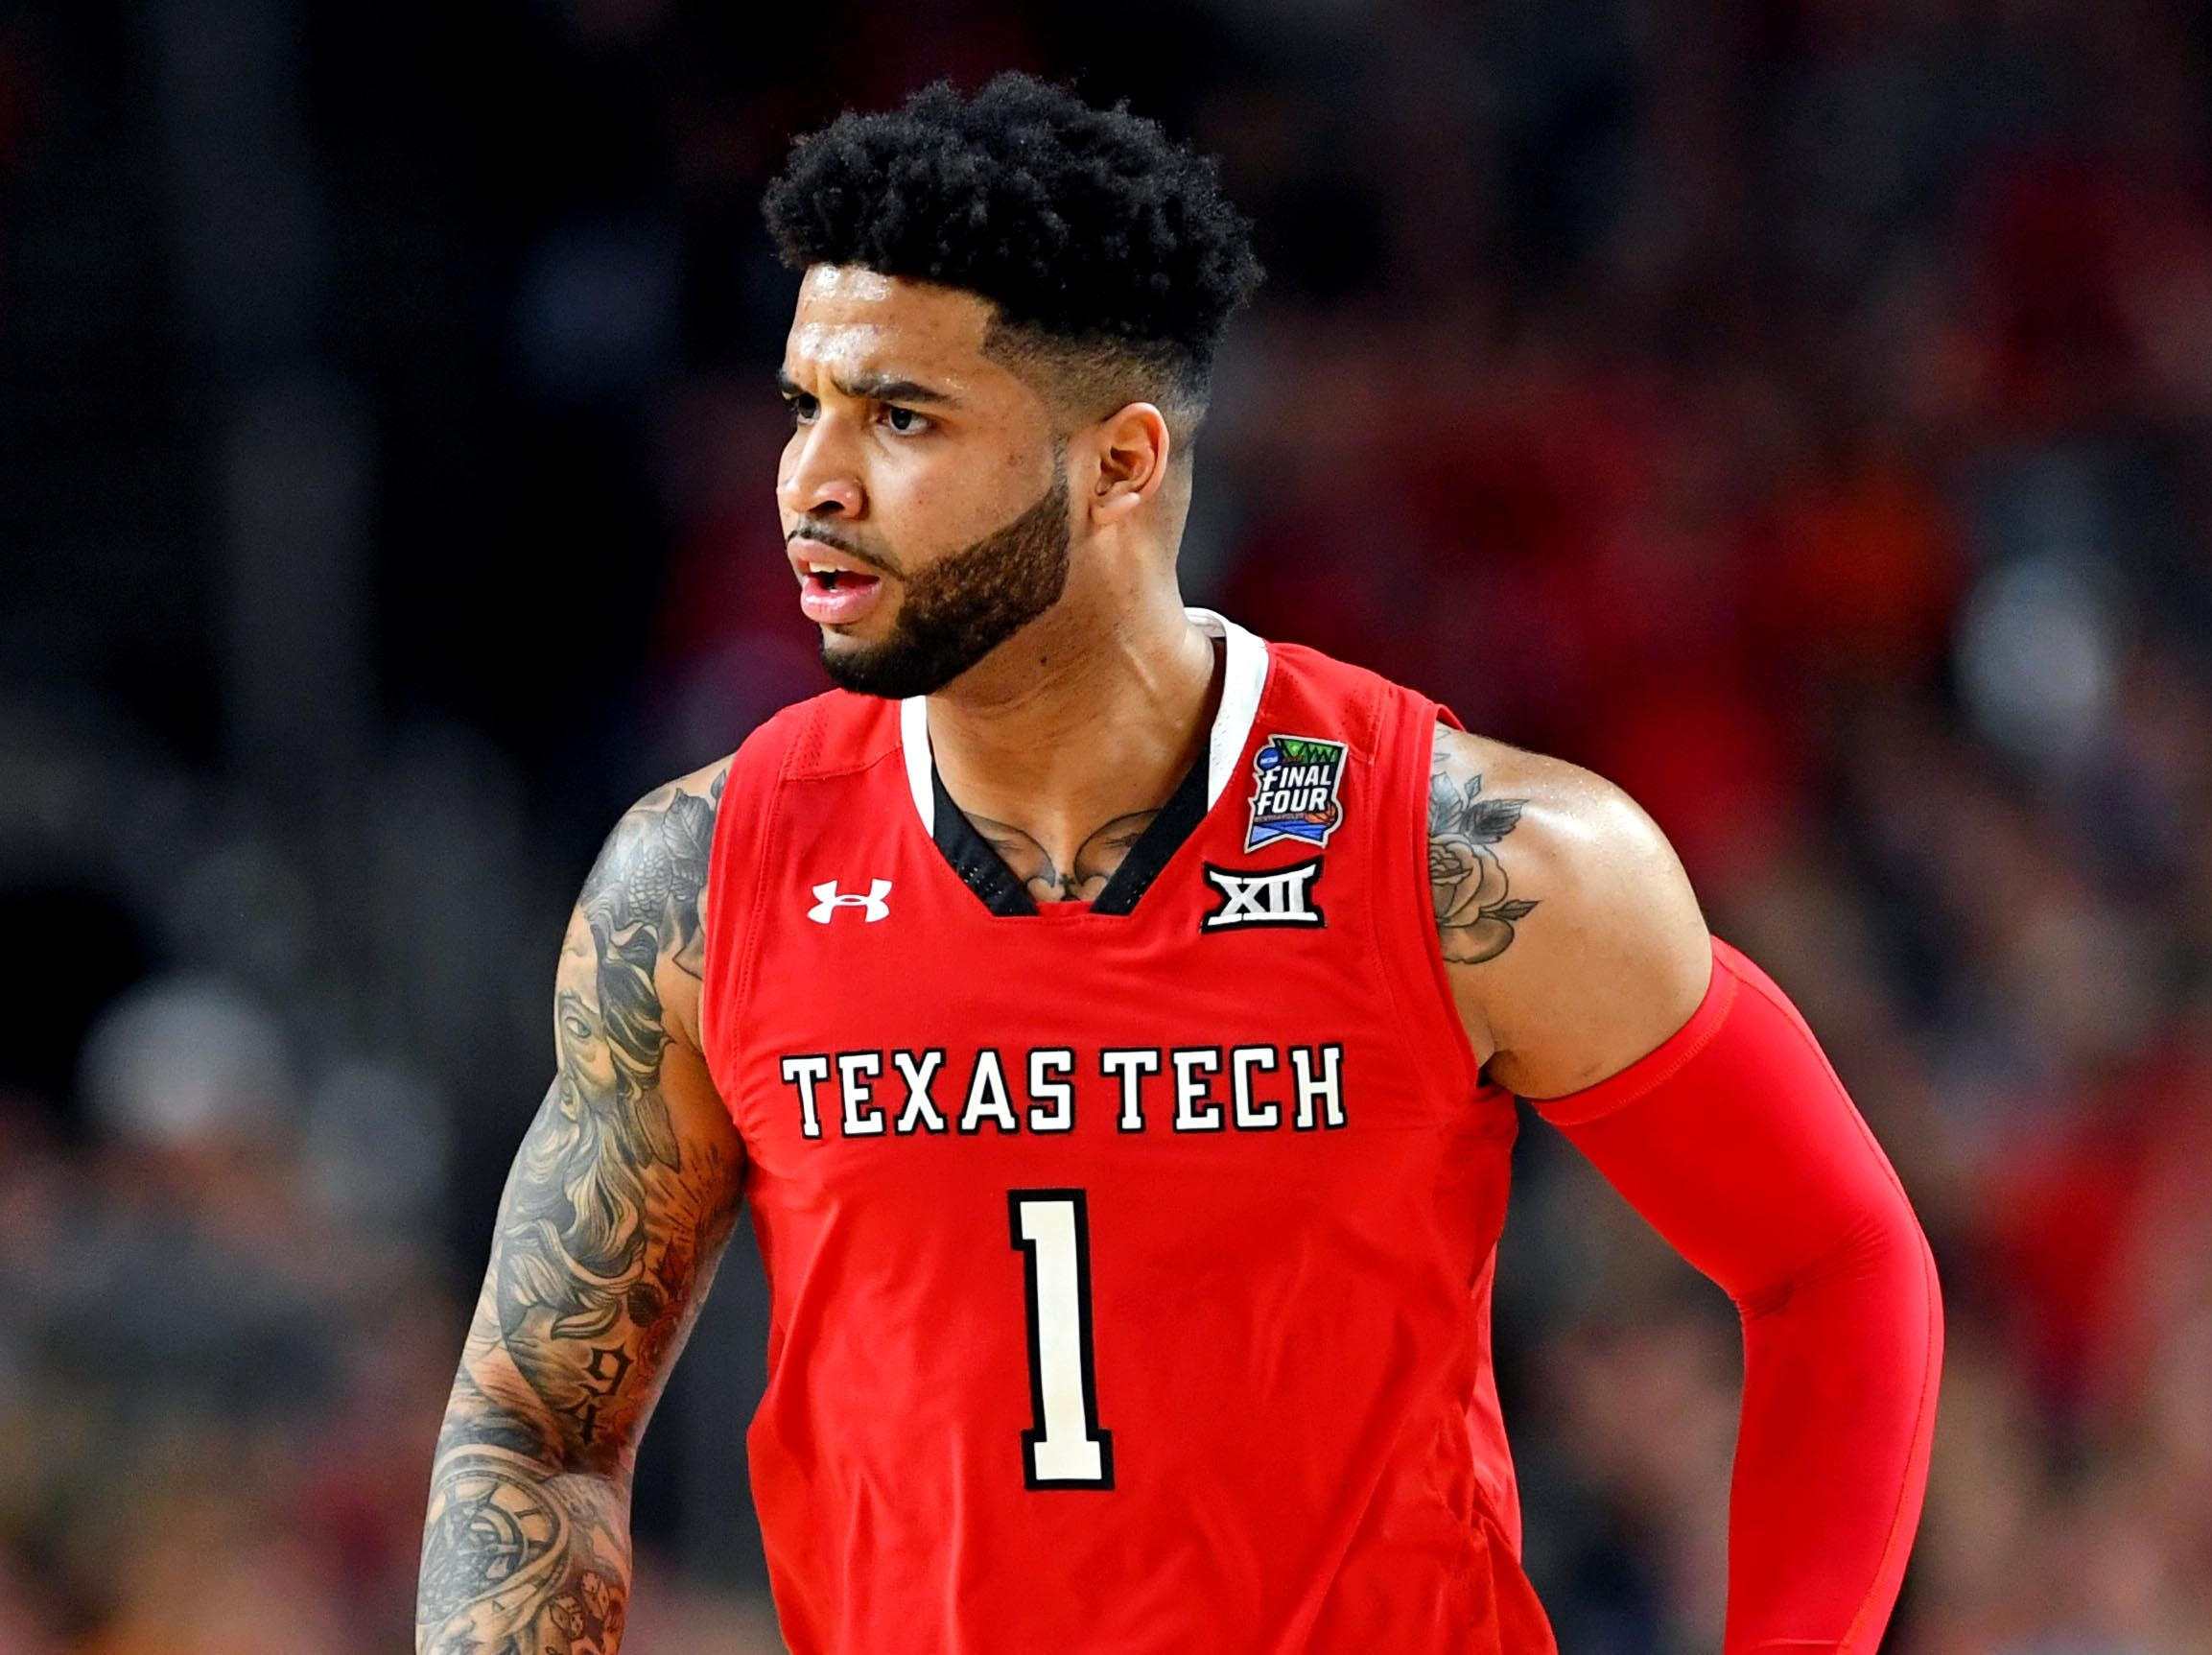 Apr 8, 2019; Minneapolis, MN, USA; Texas Tech Red Raiders guard Brandone Francis (1) reacts after a play against the Virginia Cavaliers during the first half in the championship game of the 2019 men's Final Four at US Bank Stadium. Mandatory Credit: Bob Donnan-USA TODAY Sports